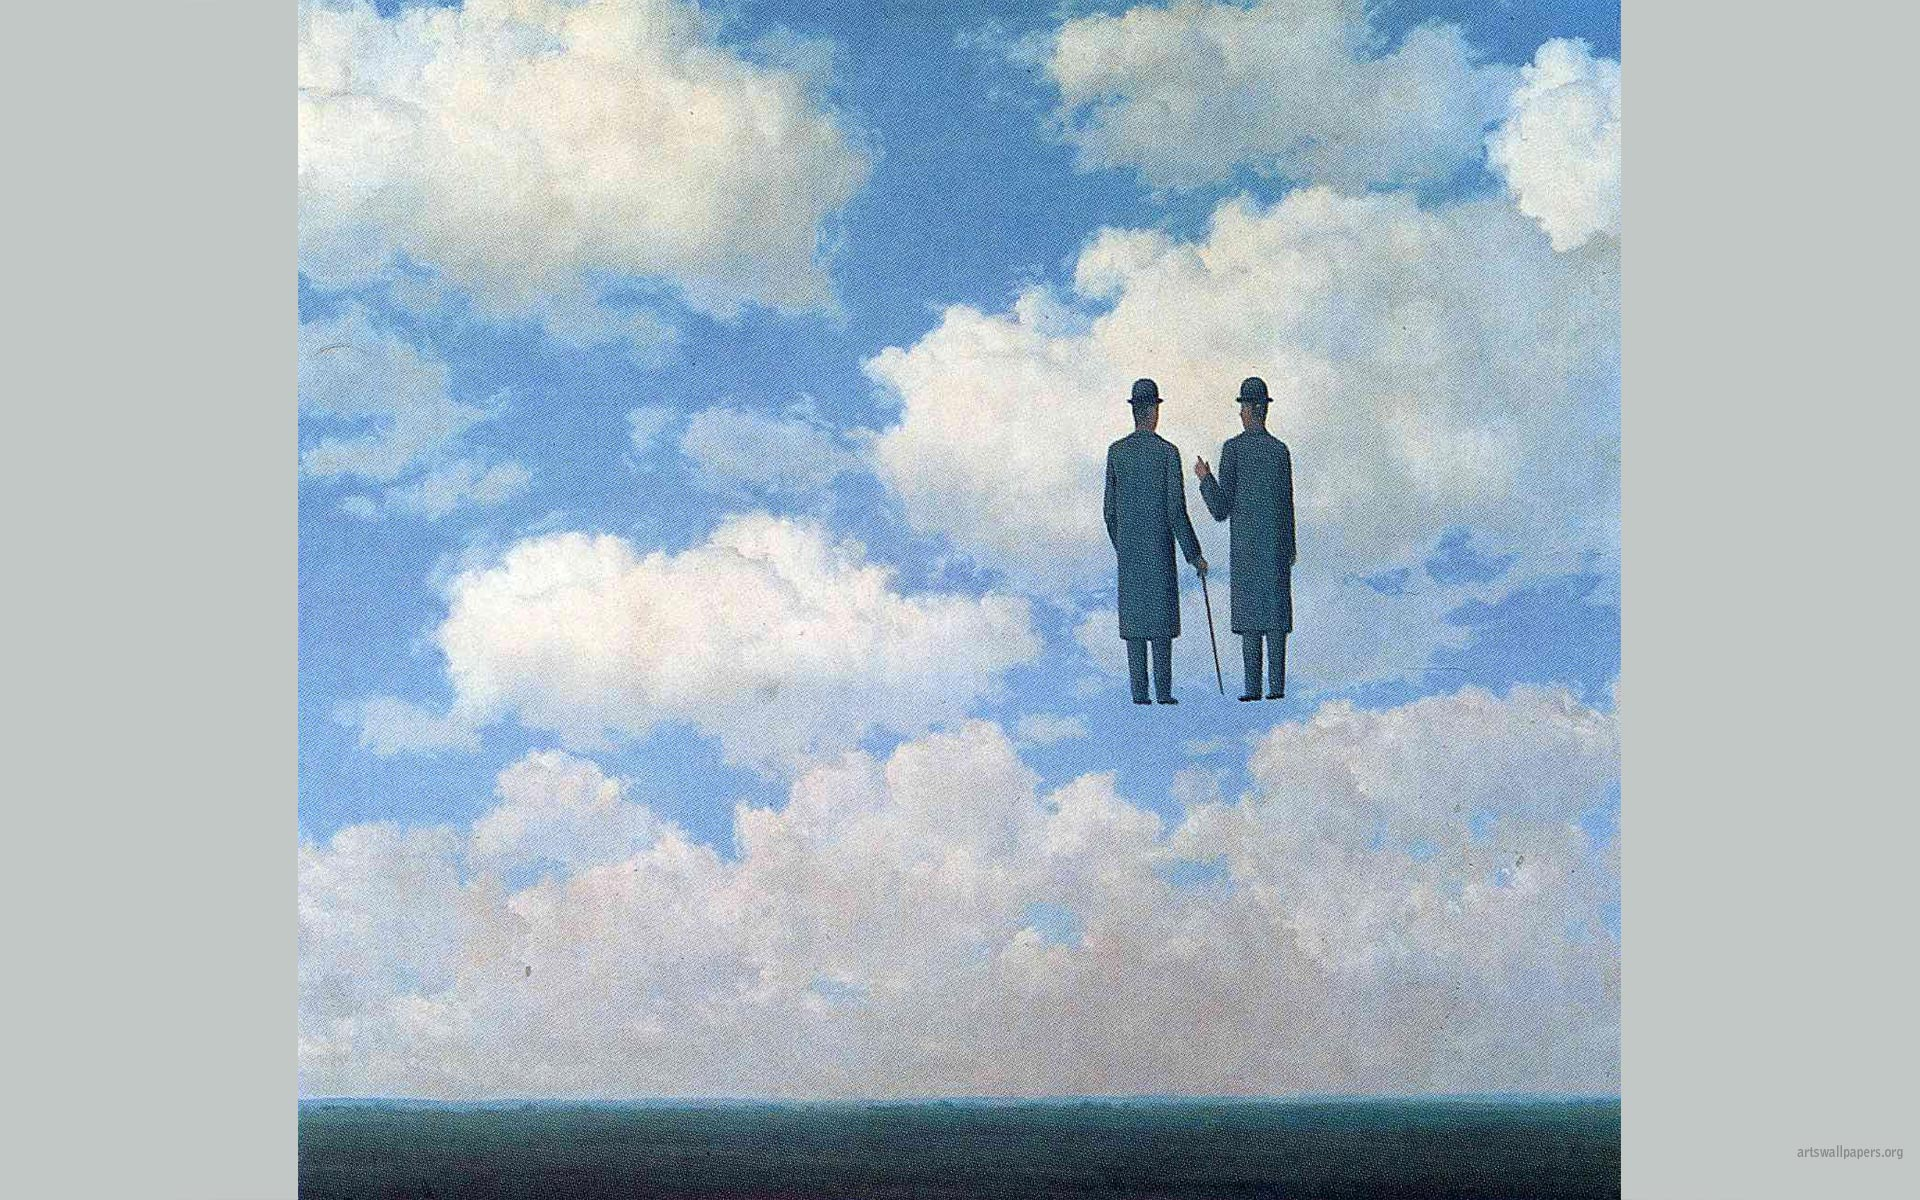 recognition   Rene Magritte Wallpaper Paintings Art Wallpaper 1920x1200